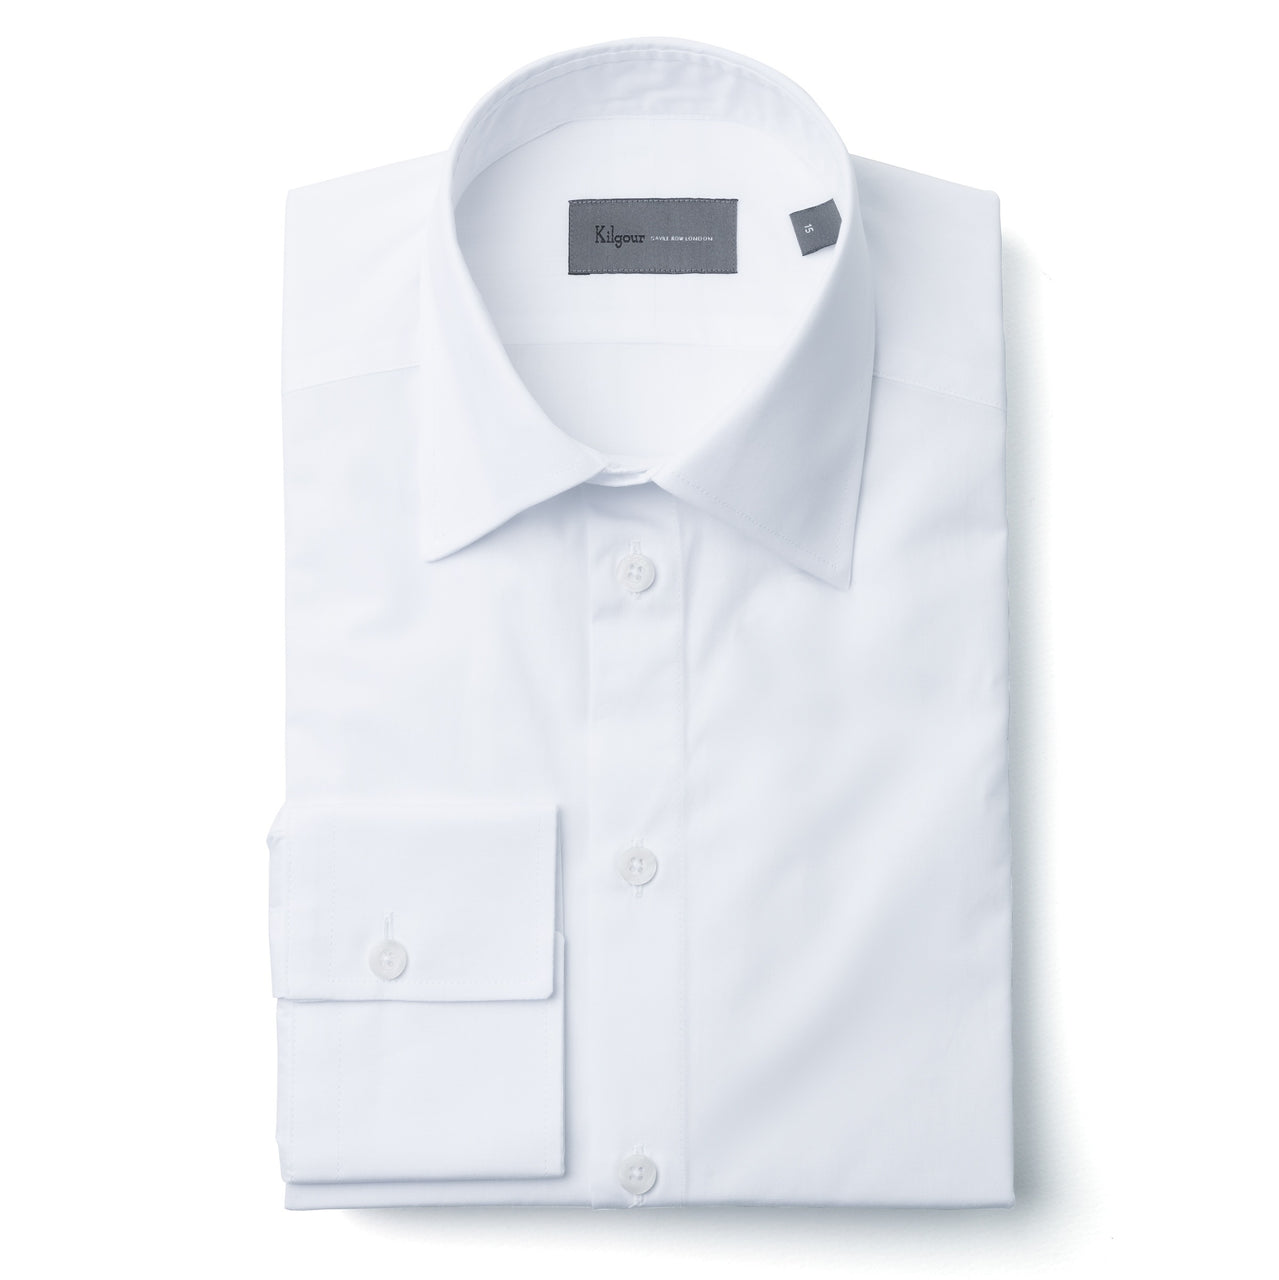 Kilgour Savile Row Solid White Luxury Cotton Shirt